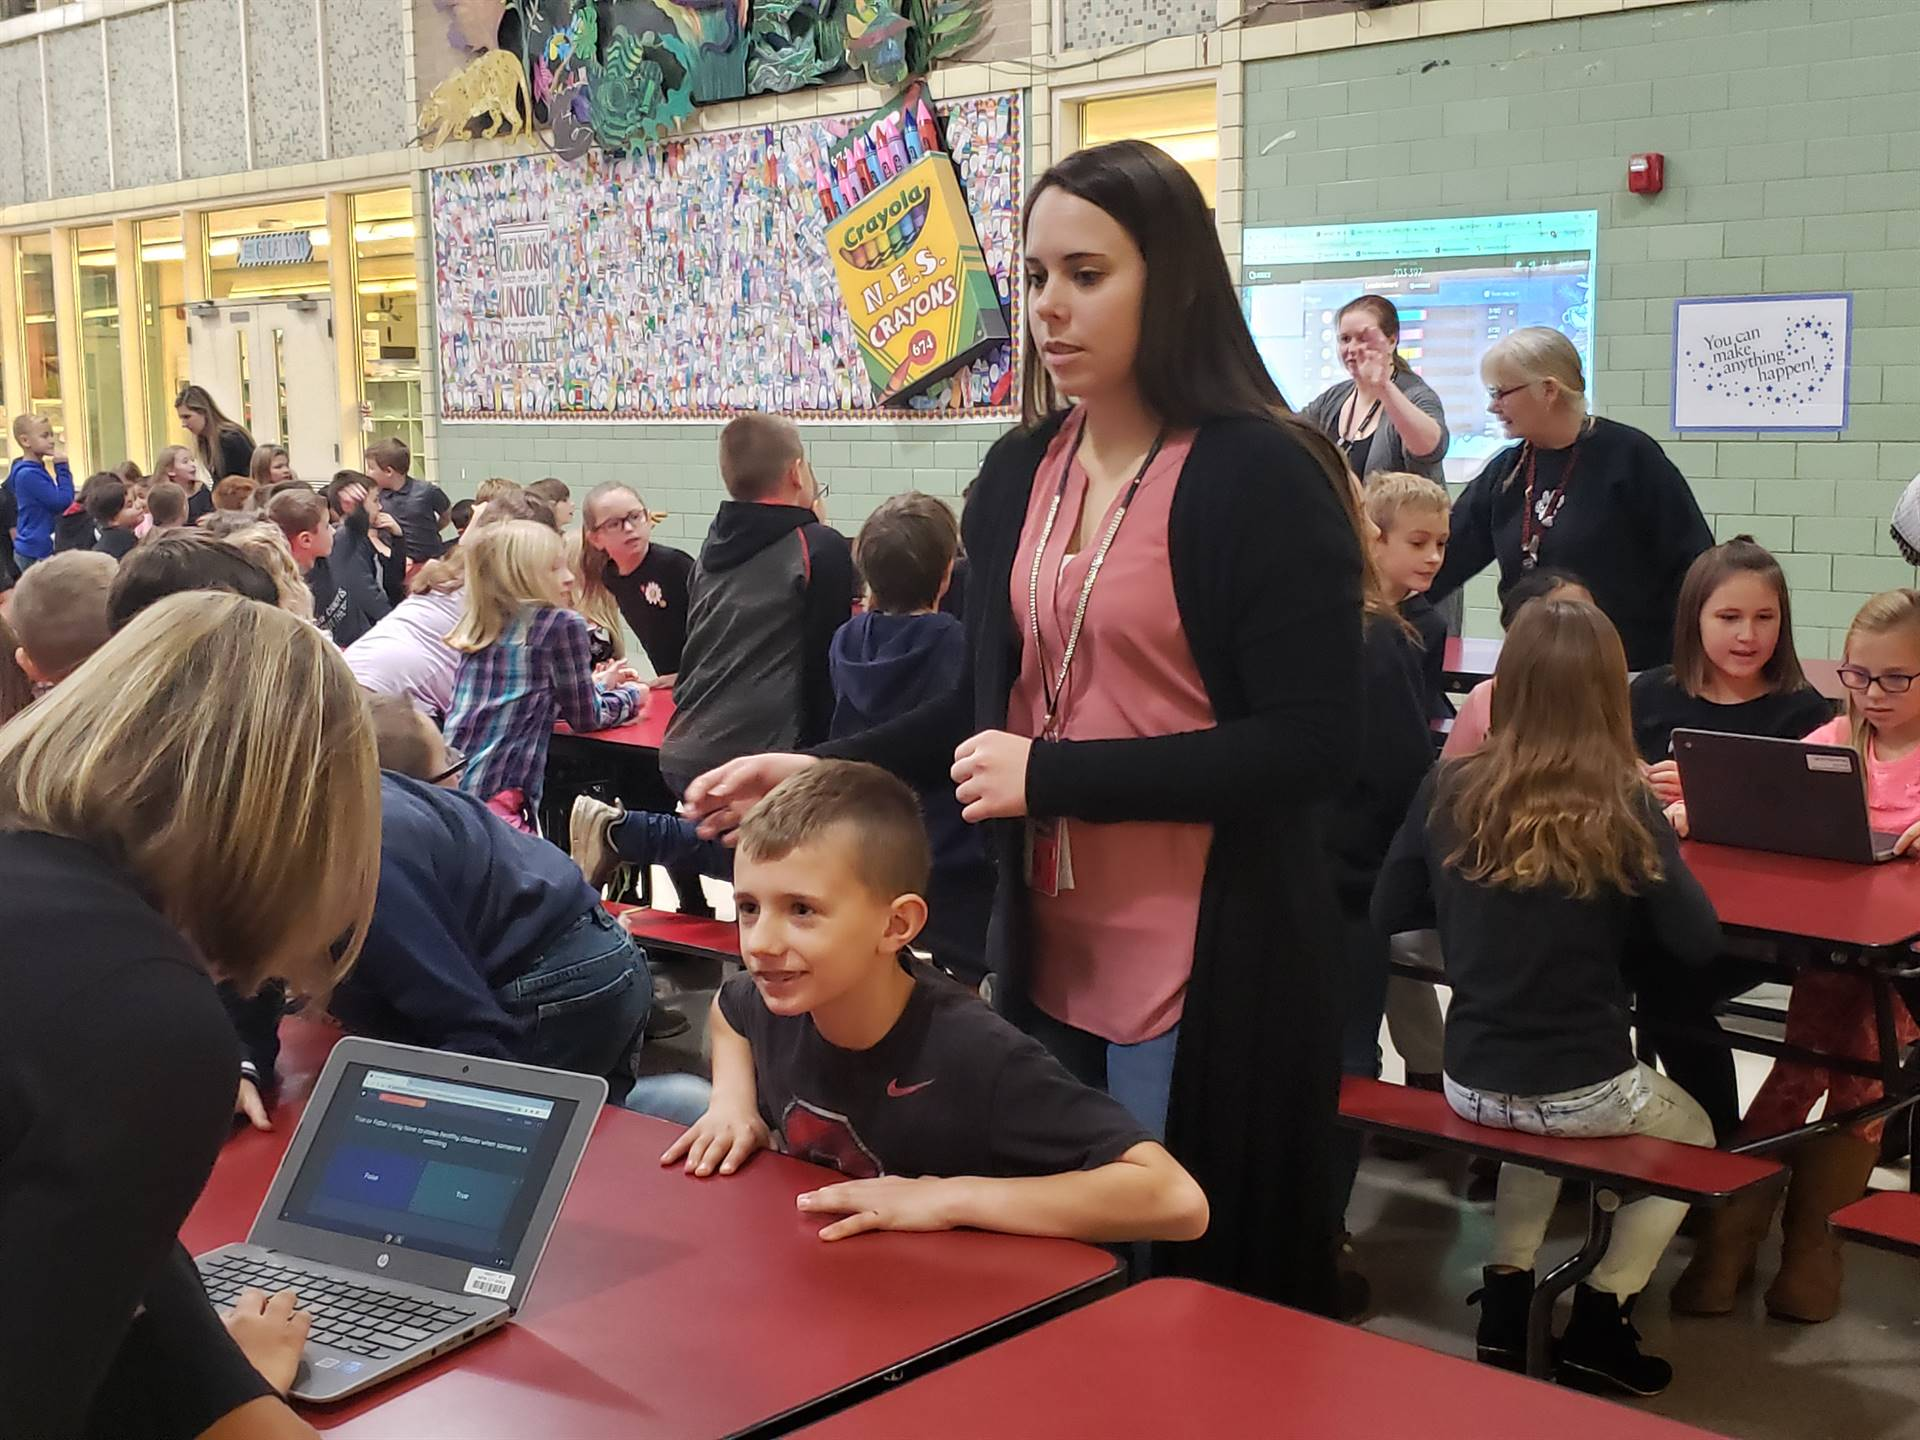 Third graders and their teachers participate in an activity for Really Excellent Decisions